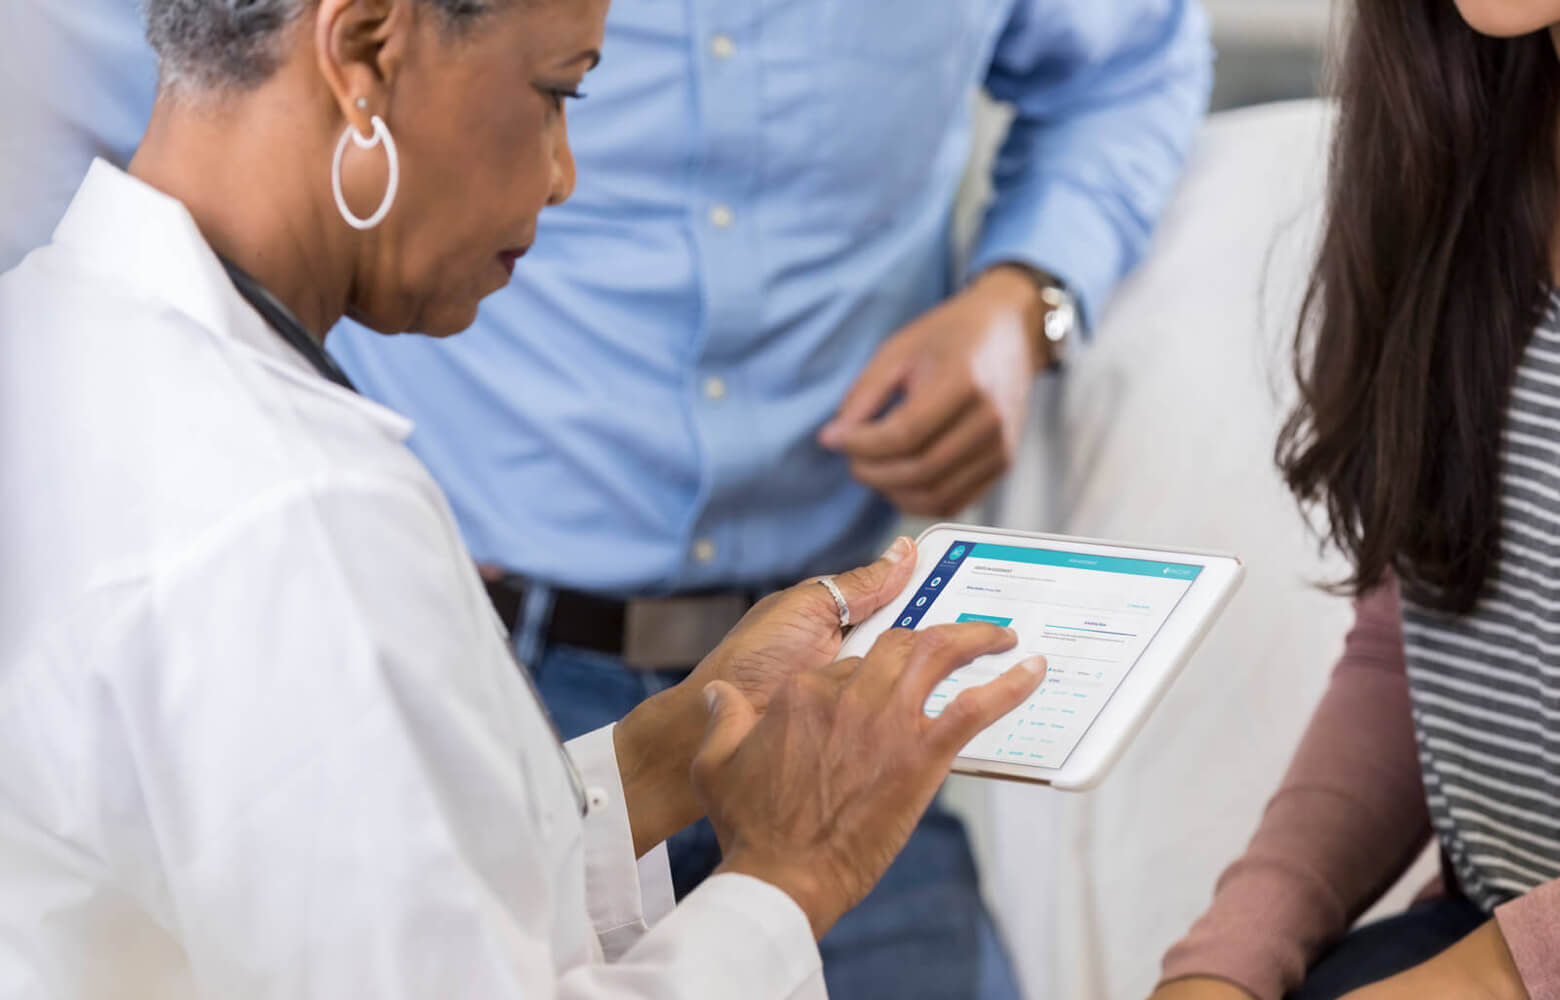 Doctor taking notes on digital tablet while meeting with two patients.